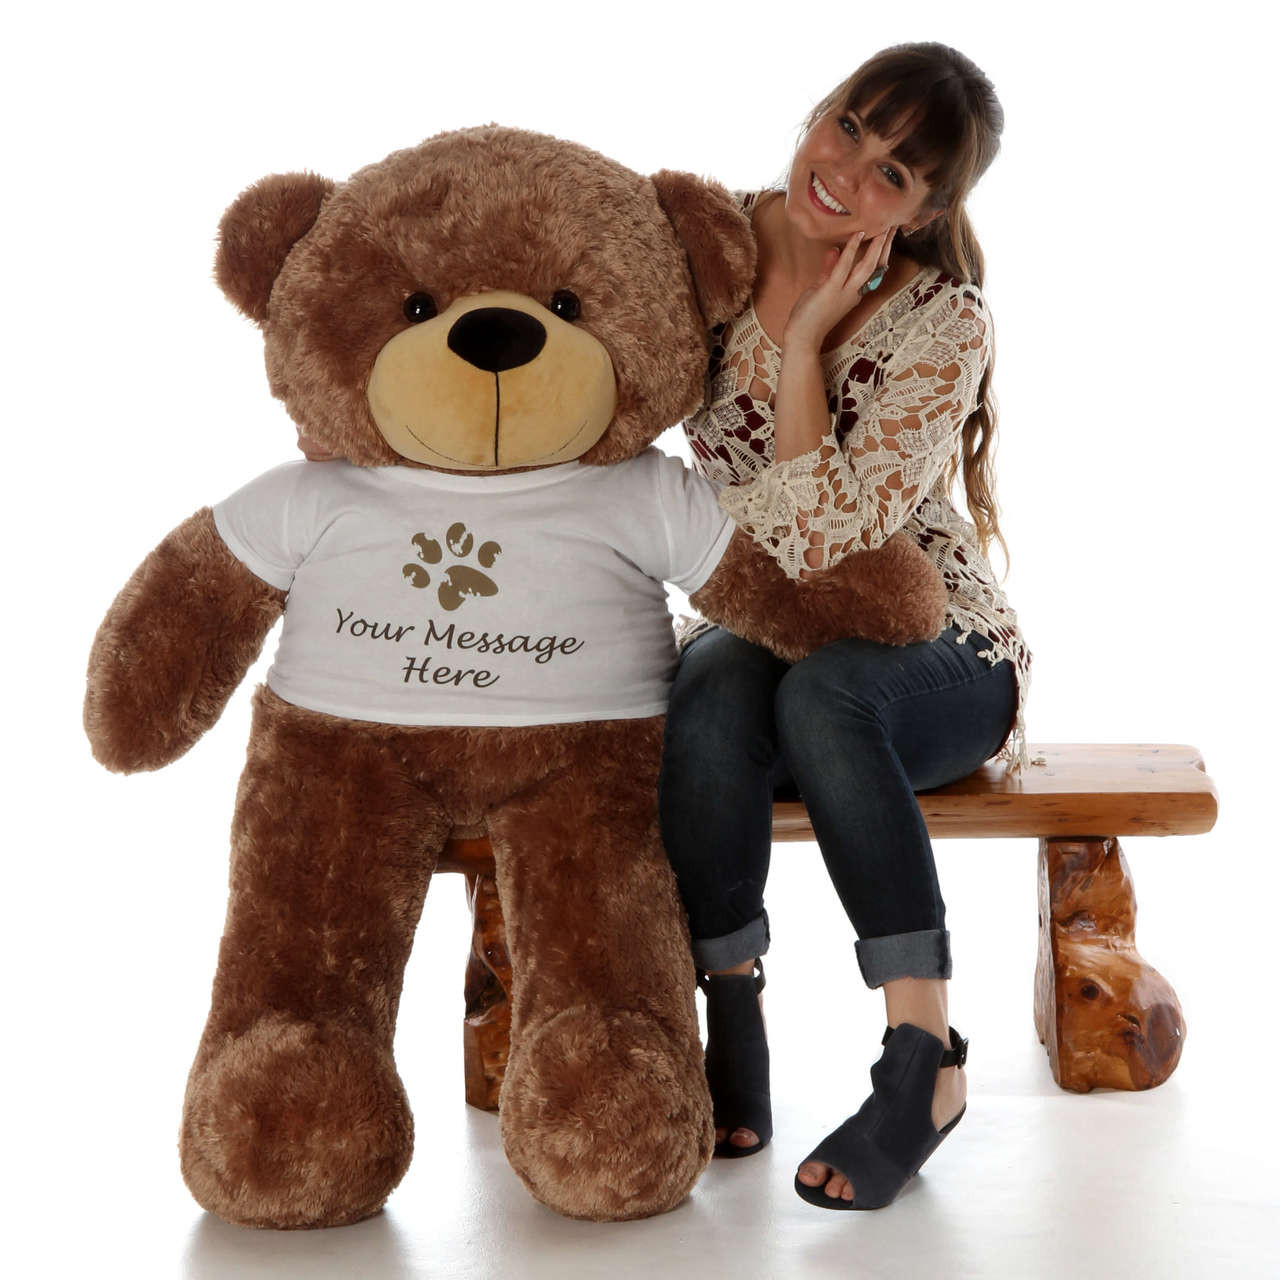 Big Mocha Brown Sunny Cuddles 48 inch Personalized Teddy Bear with Paw Stamp T-shirt is ready to visit his new home.